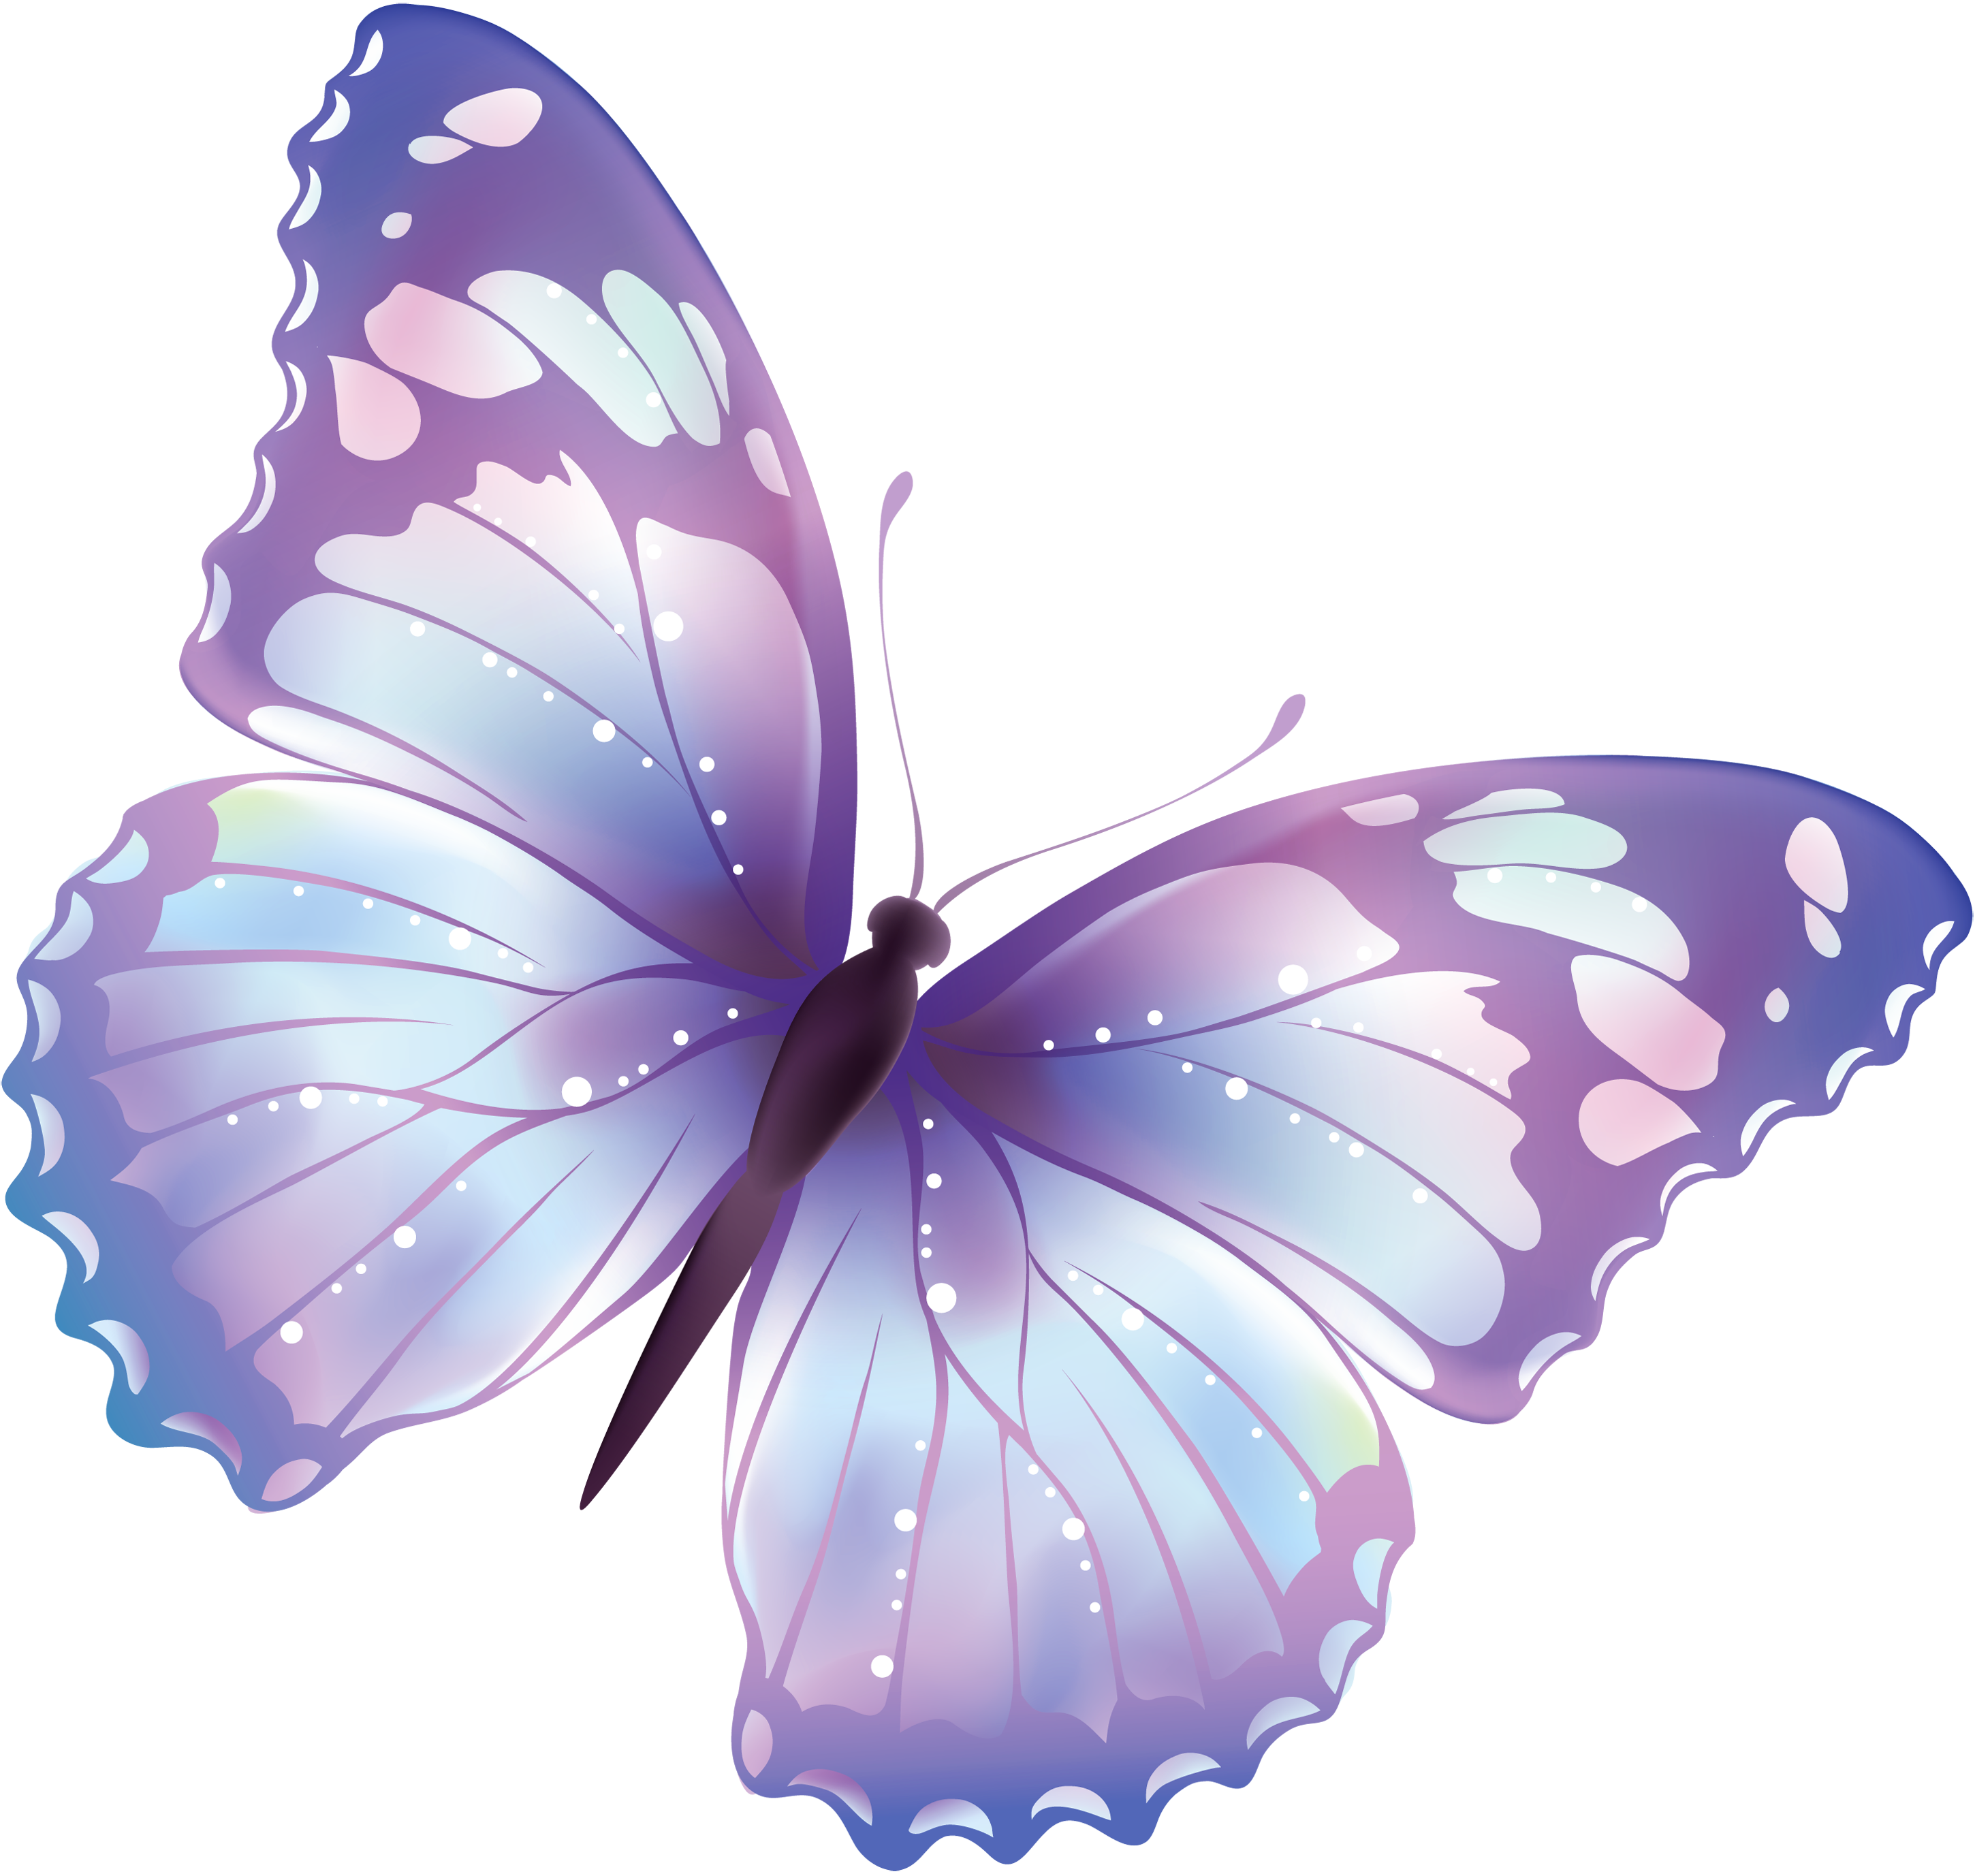 Twenty six isolated stock. Butterfly clip art transparent background vector transparent